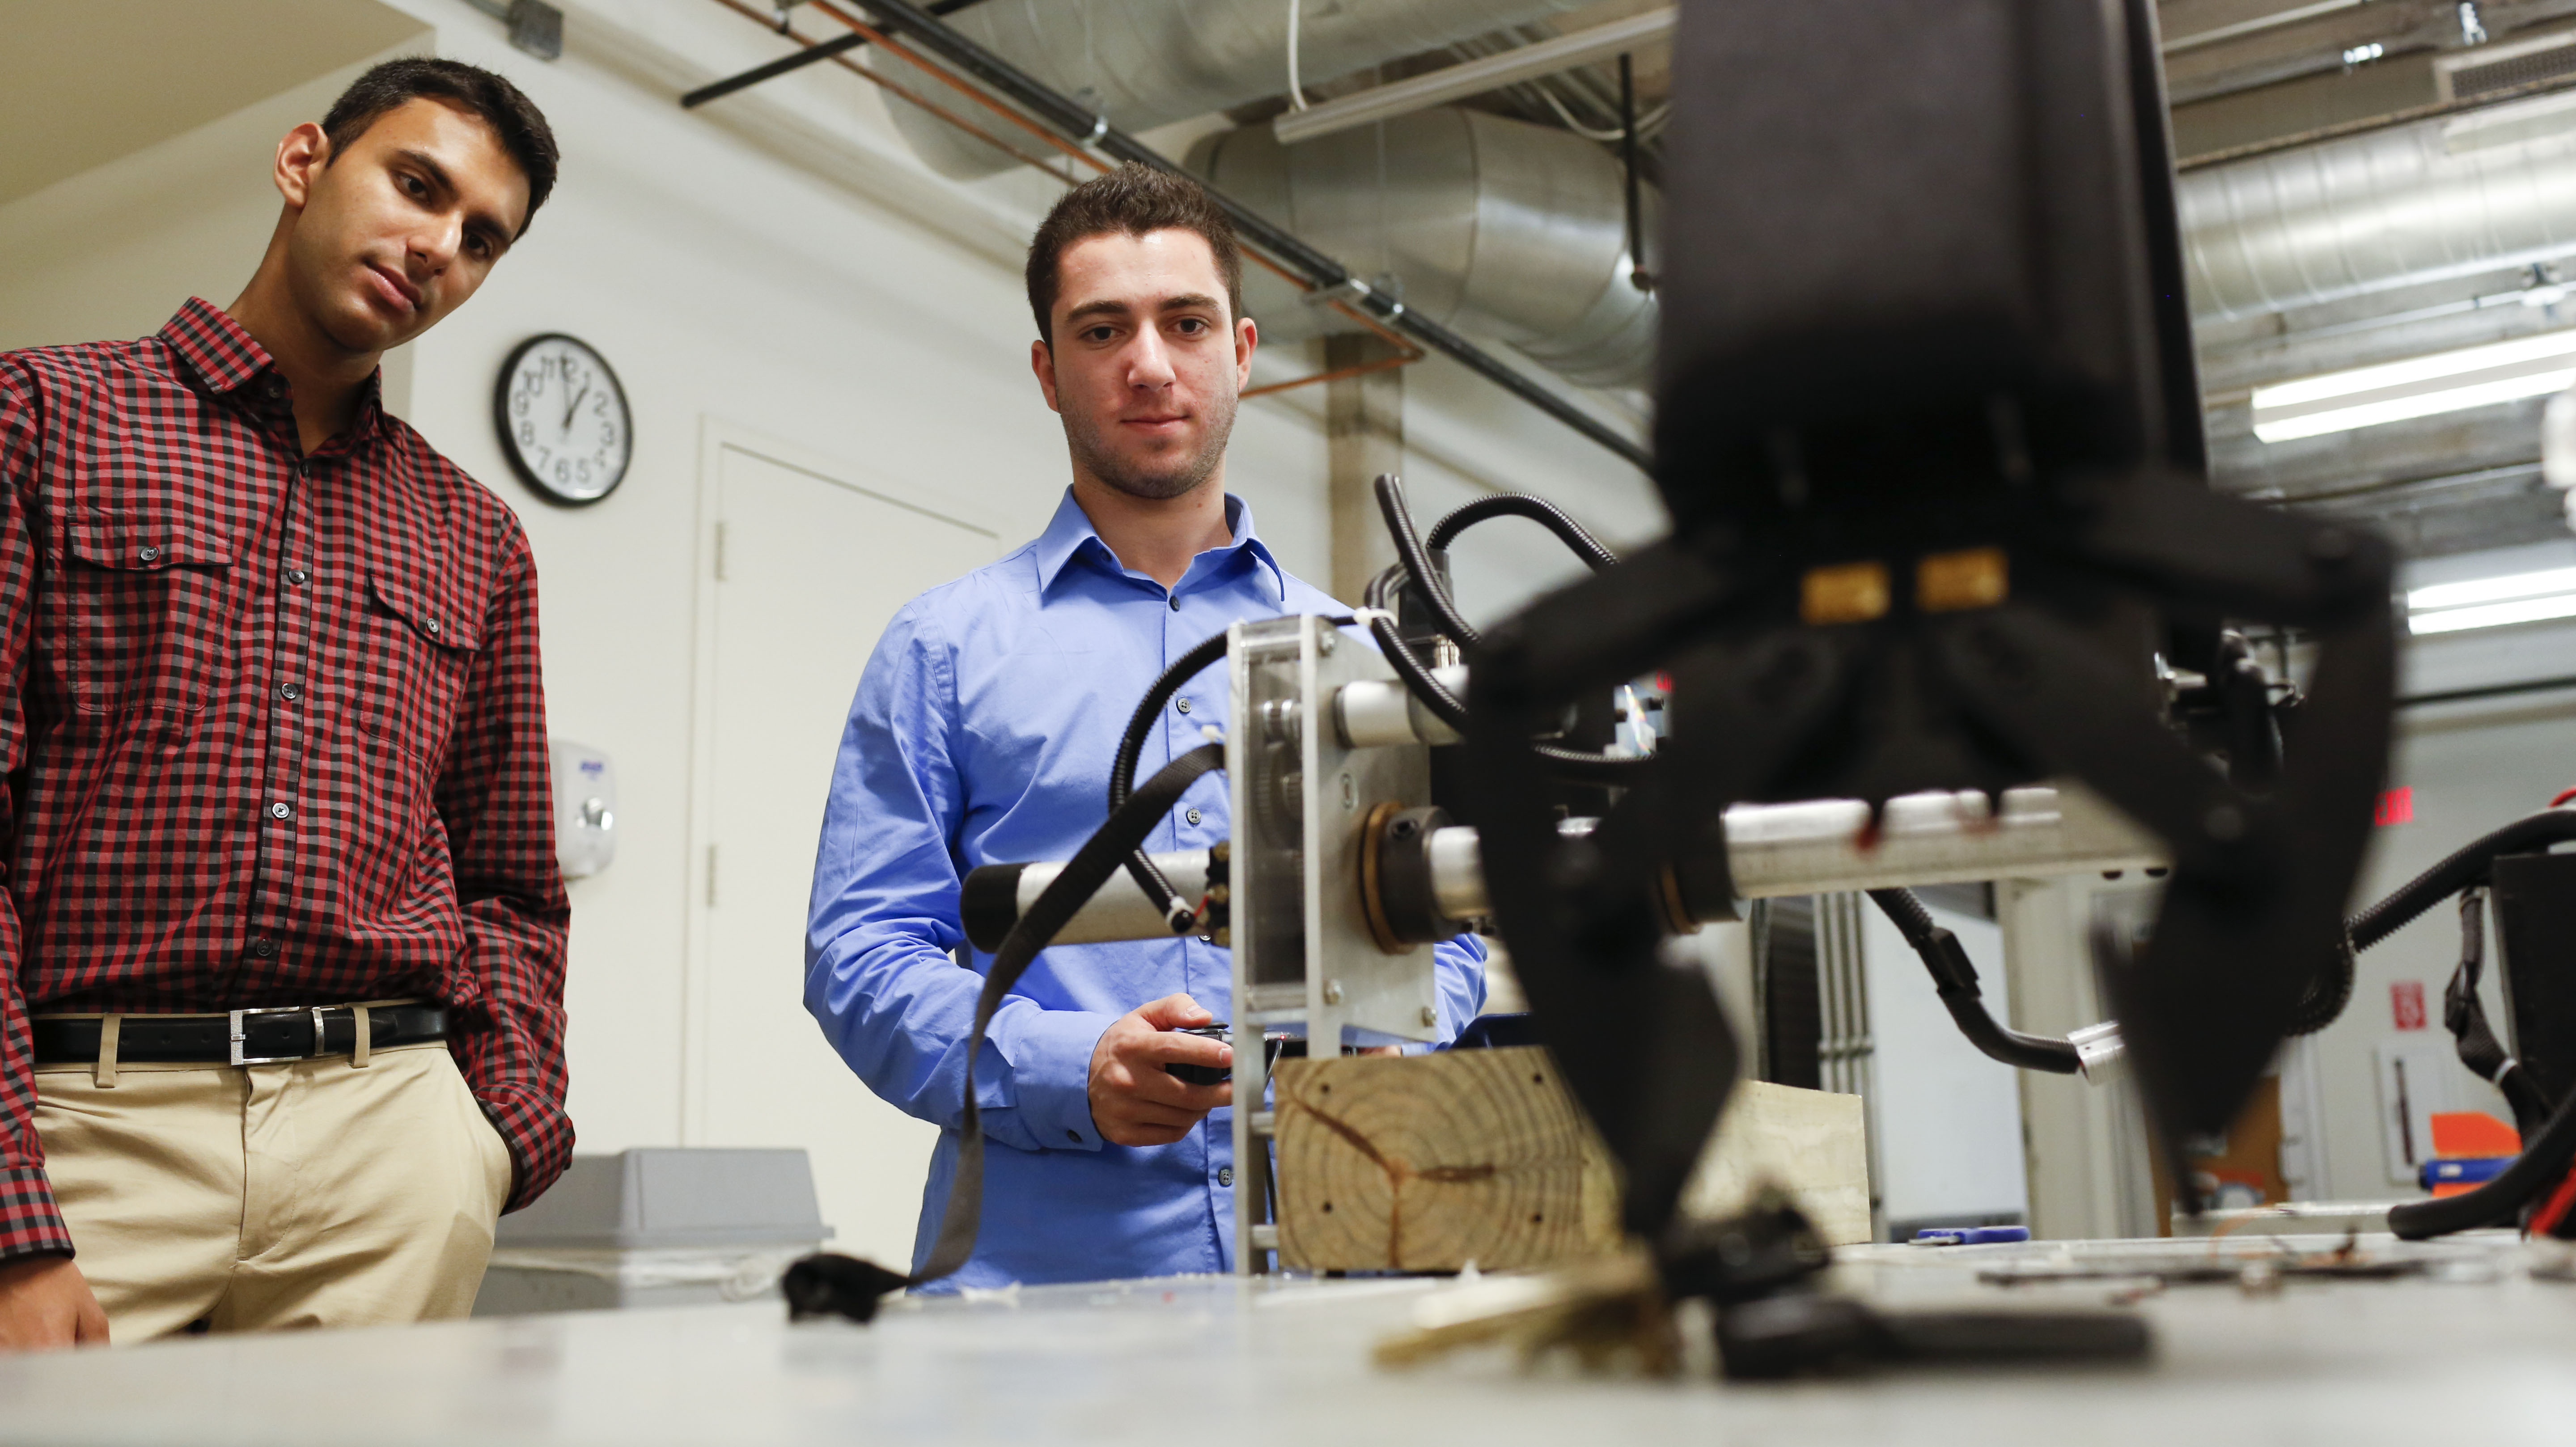 'The Coolest Thing Ever': How A Robotic Arm Changed 4 Lives